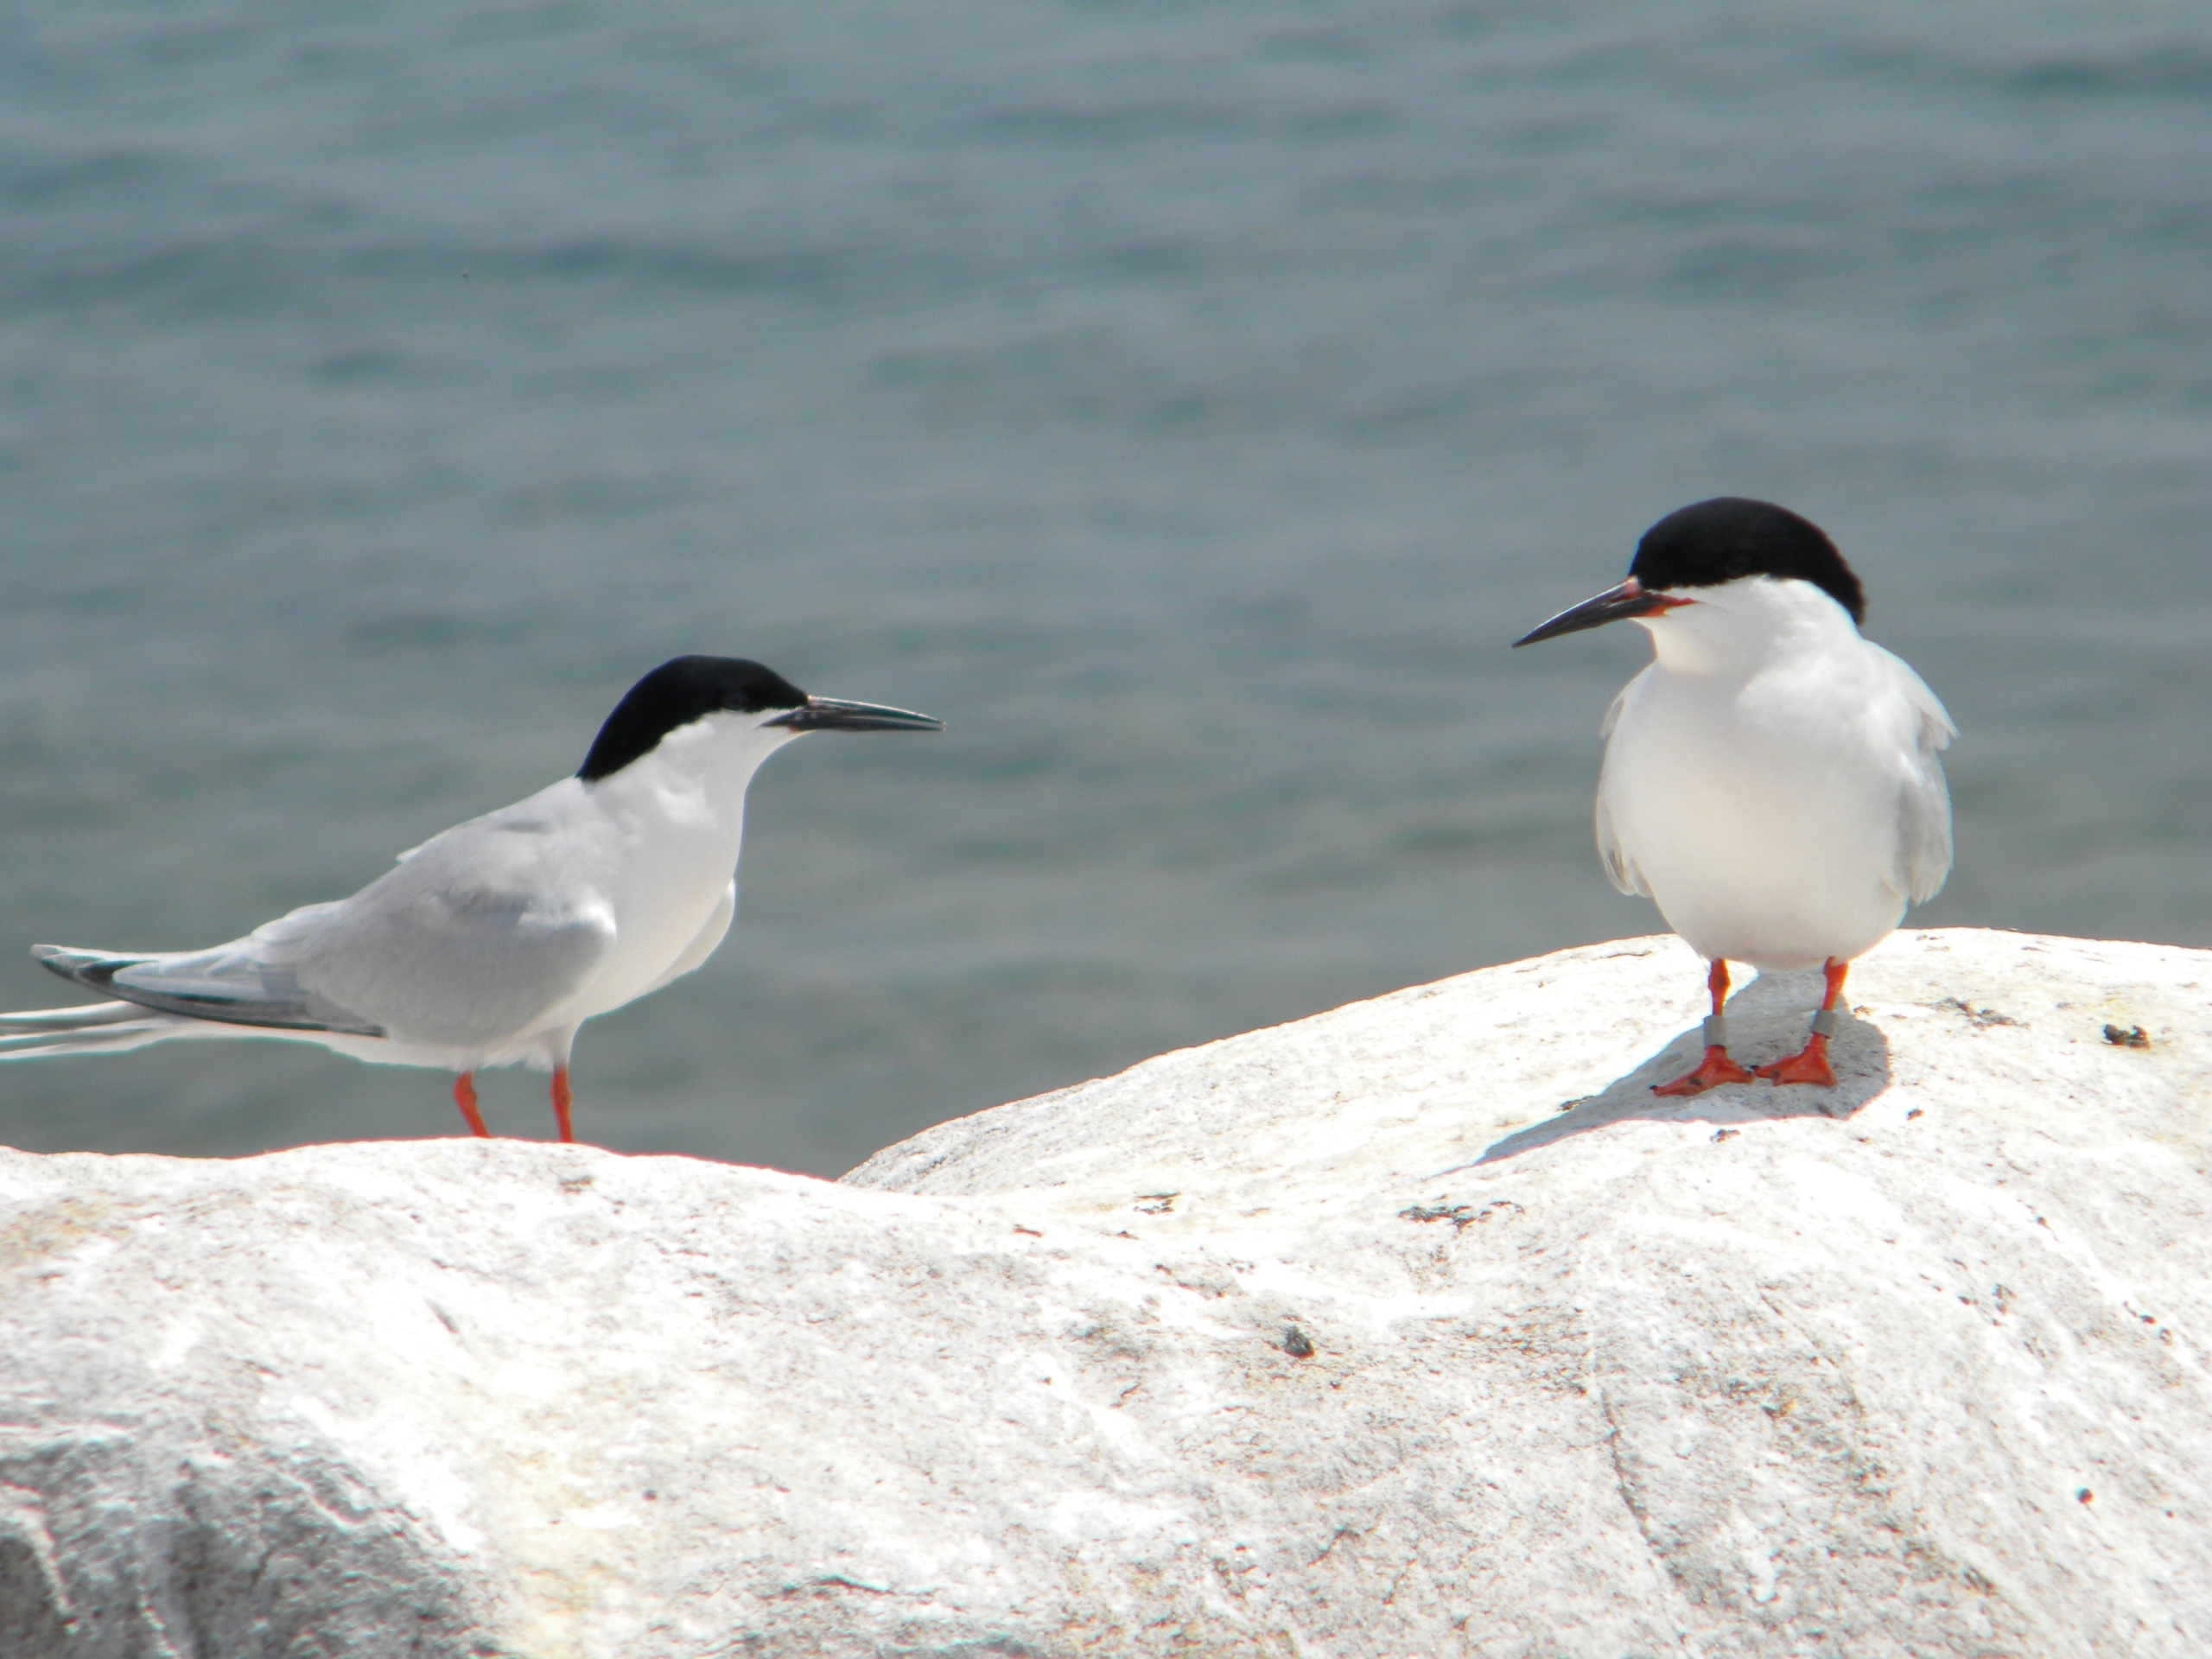 A pair of Roseate Terns on Gull Island, NY. Studies on Gull Island, in 1975, reported the hybridization of common terns and roseate terns. Similar crosses have not been documented since.  Photo Credit: Sarah Nystrom